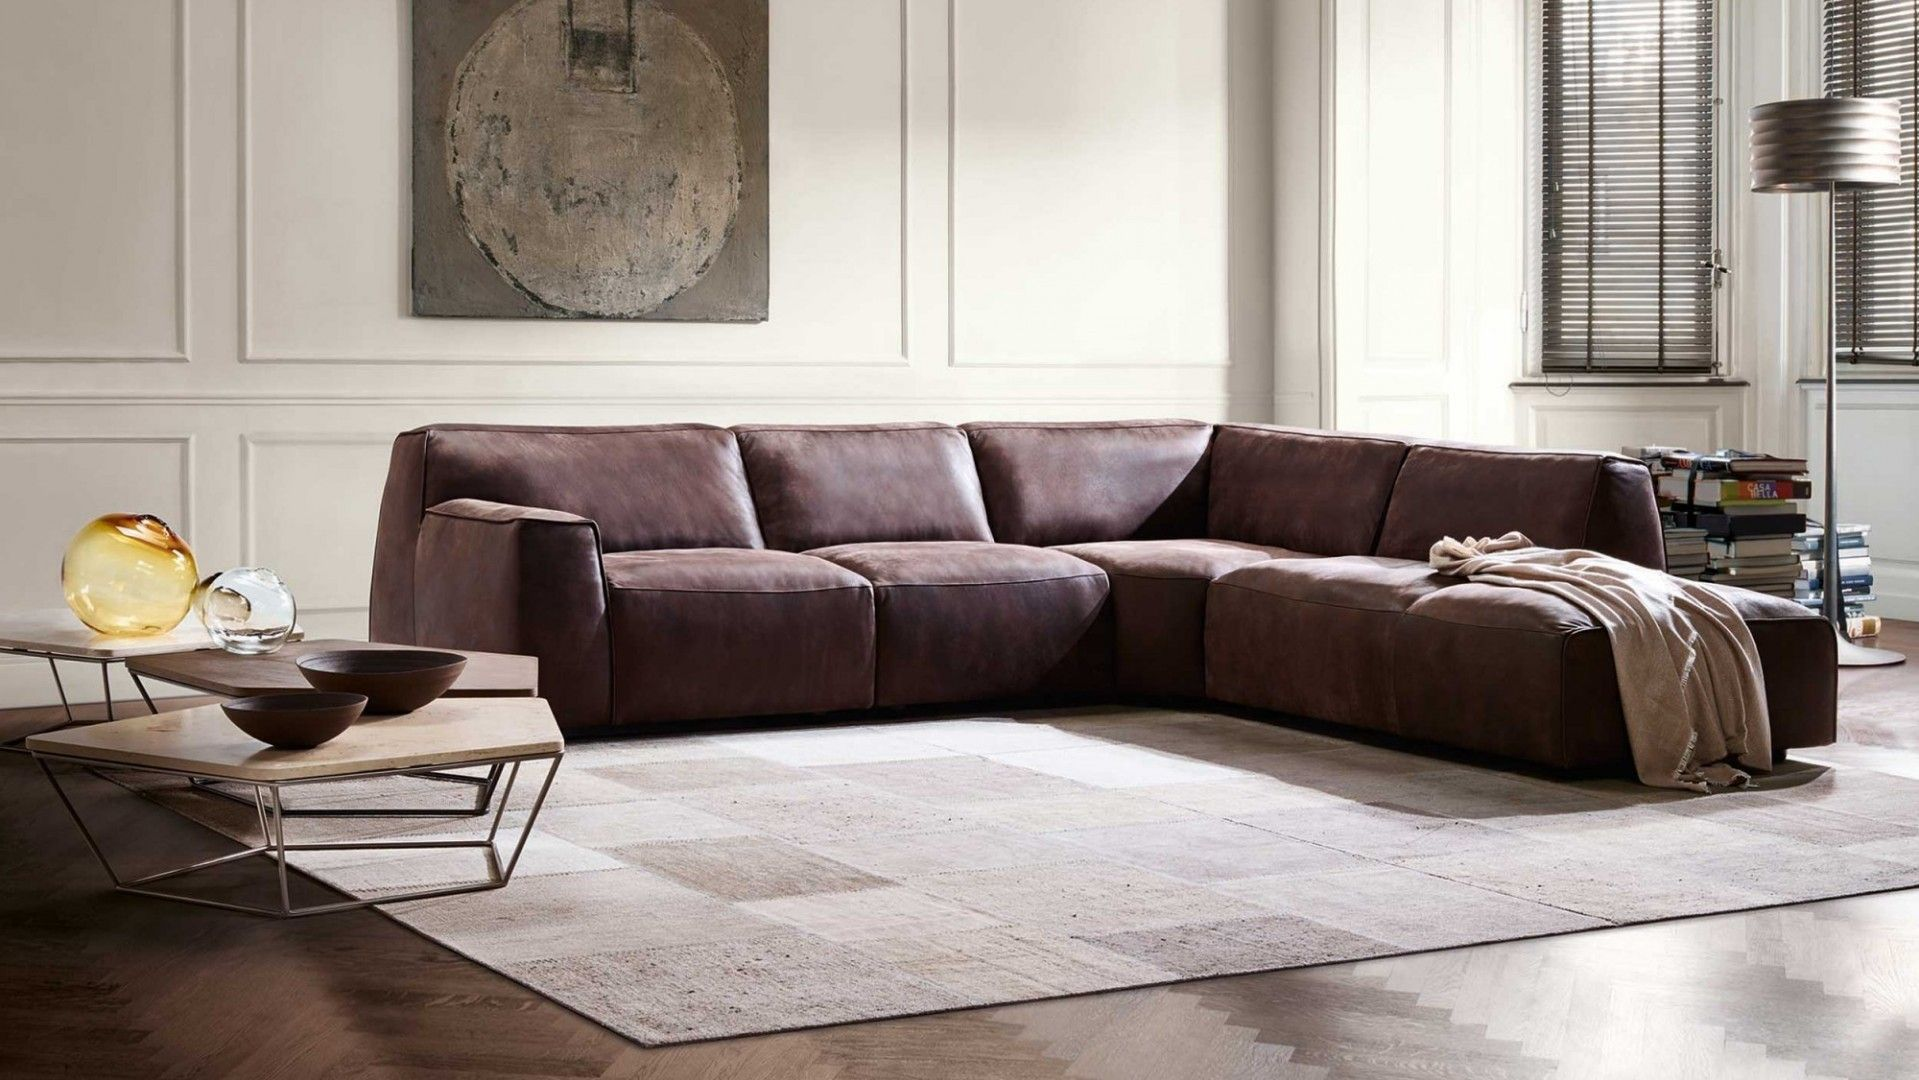 forma-sectional-1920x1080